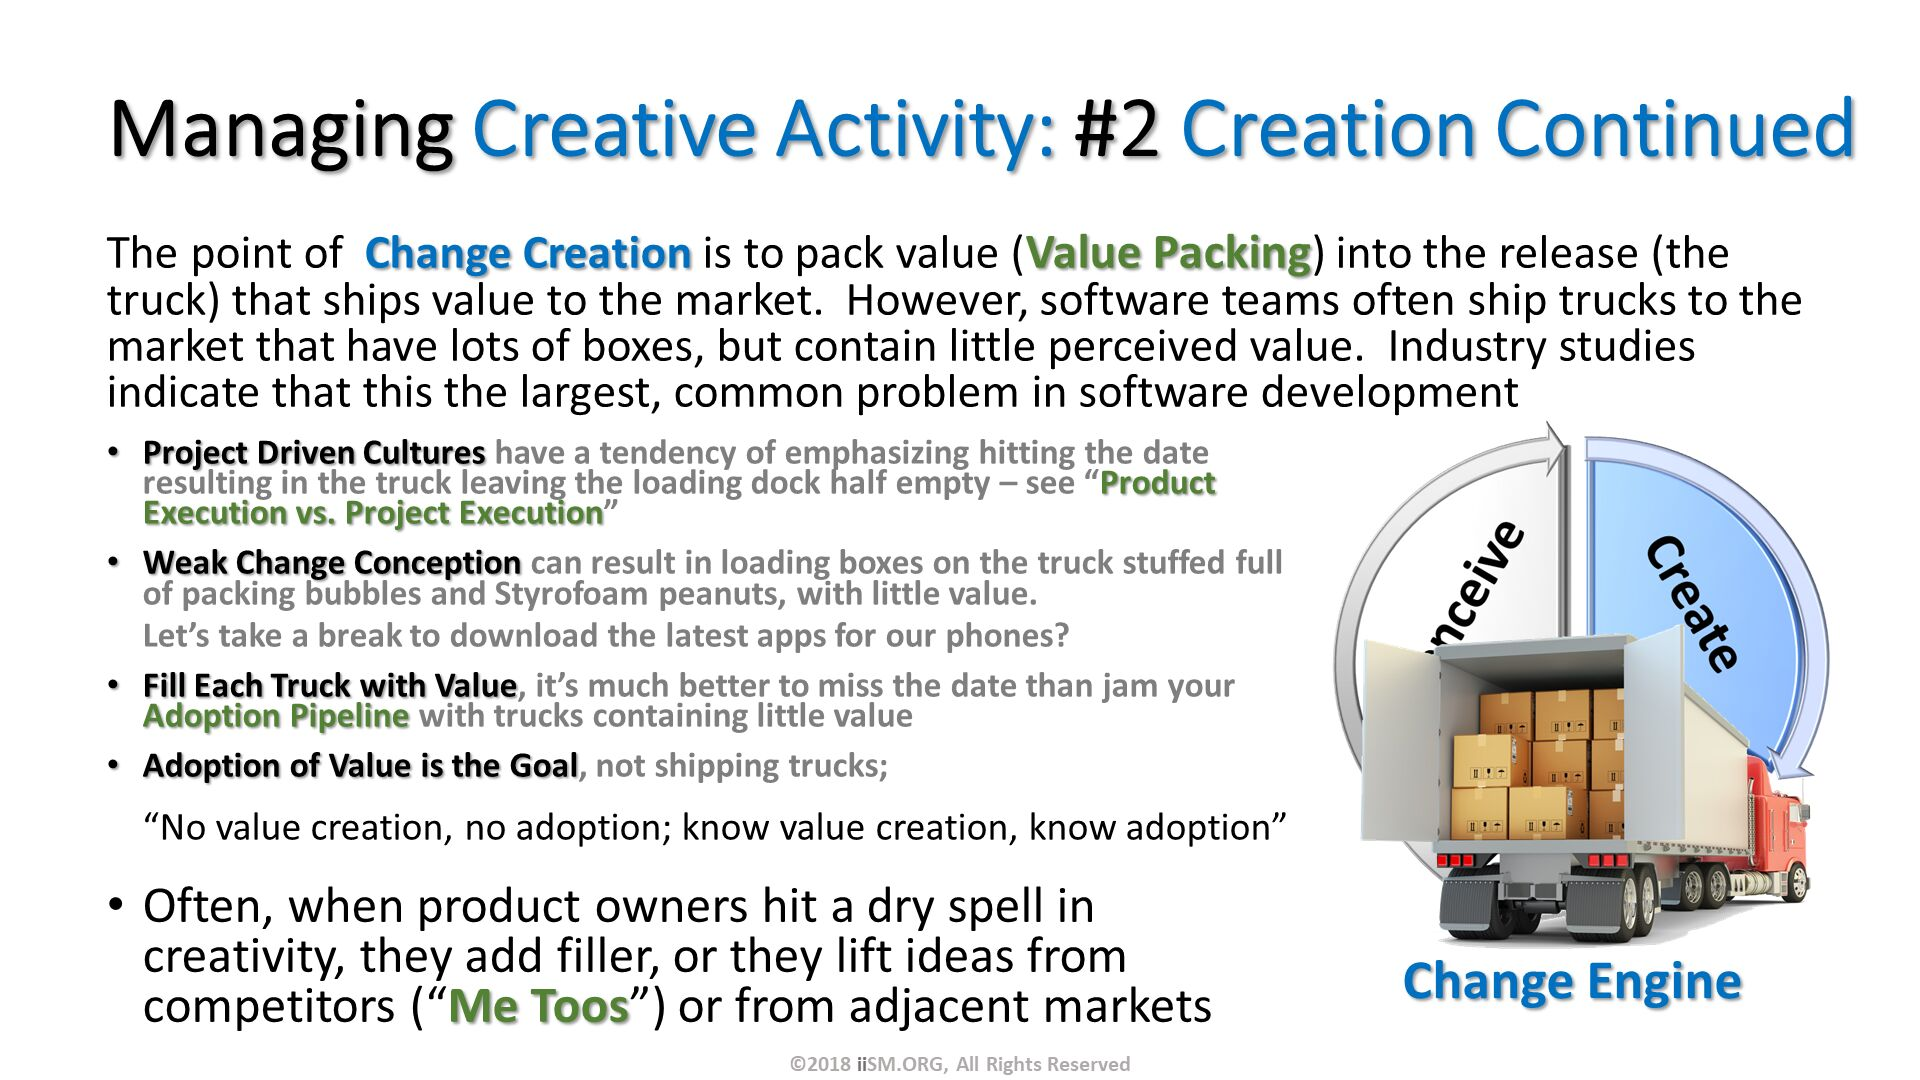 "Managing Creative Activity: #2 Creation Continued. The point of  Change Creation is to pack value (Value Packing) into the release (the truck) that ships value to the market.  However, software teams often ship trucks to the market that have lots of boxes, but contain little perceived value.  Industry studies indicate that this the largest, common problem in software development. Often, when product owners hit a dry spell in creativity, they add filler, or they lift ideas from competitors (""Me Toos"") or from adjacent markets . Change Engine . Project Driven Cultures have a tendency of emphasizing hitting the date resulting in the truck leaving the loading dock half empty – see ""Product Execution vs. Project Execution"" Weak Change Conception can result in loading boxes on the truck stuffed full of packing bubbles and Styrofoam peanuts, with little value.  Let's take a break to download the latest apps for our phones? Fill Each Truck with Value, it's much better to miss the date than jam your Adoption Pipeline with trucks containing little value Adoption of Value is the Goal, not shipping trucks; ""No value creation, no adoption; know value creation, know adoption"". ©2018 iiSM.ORG, All Rights Reserved."